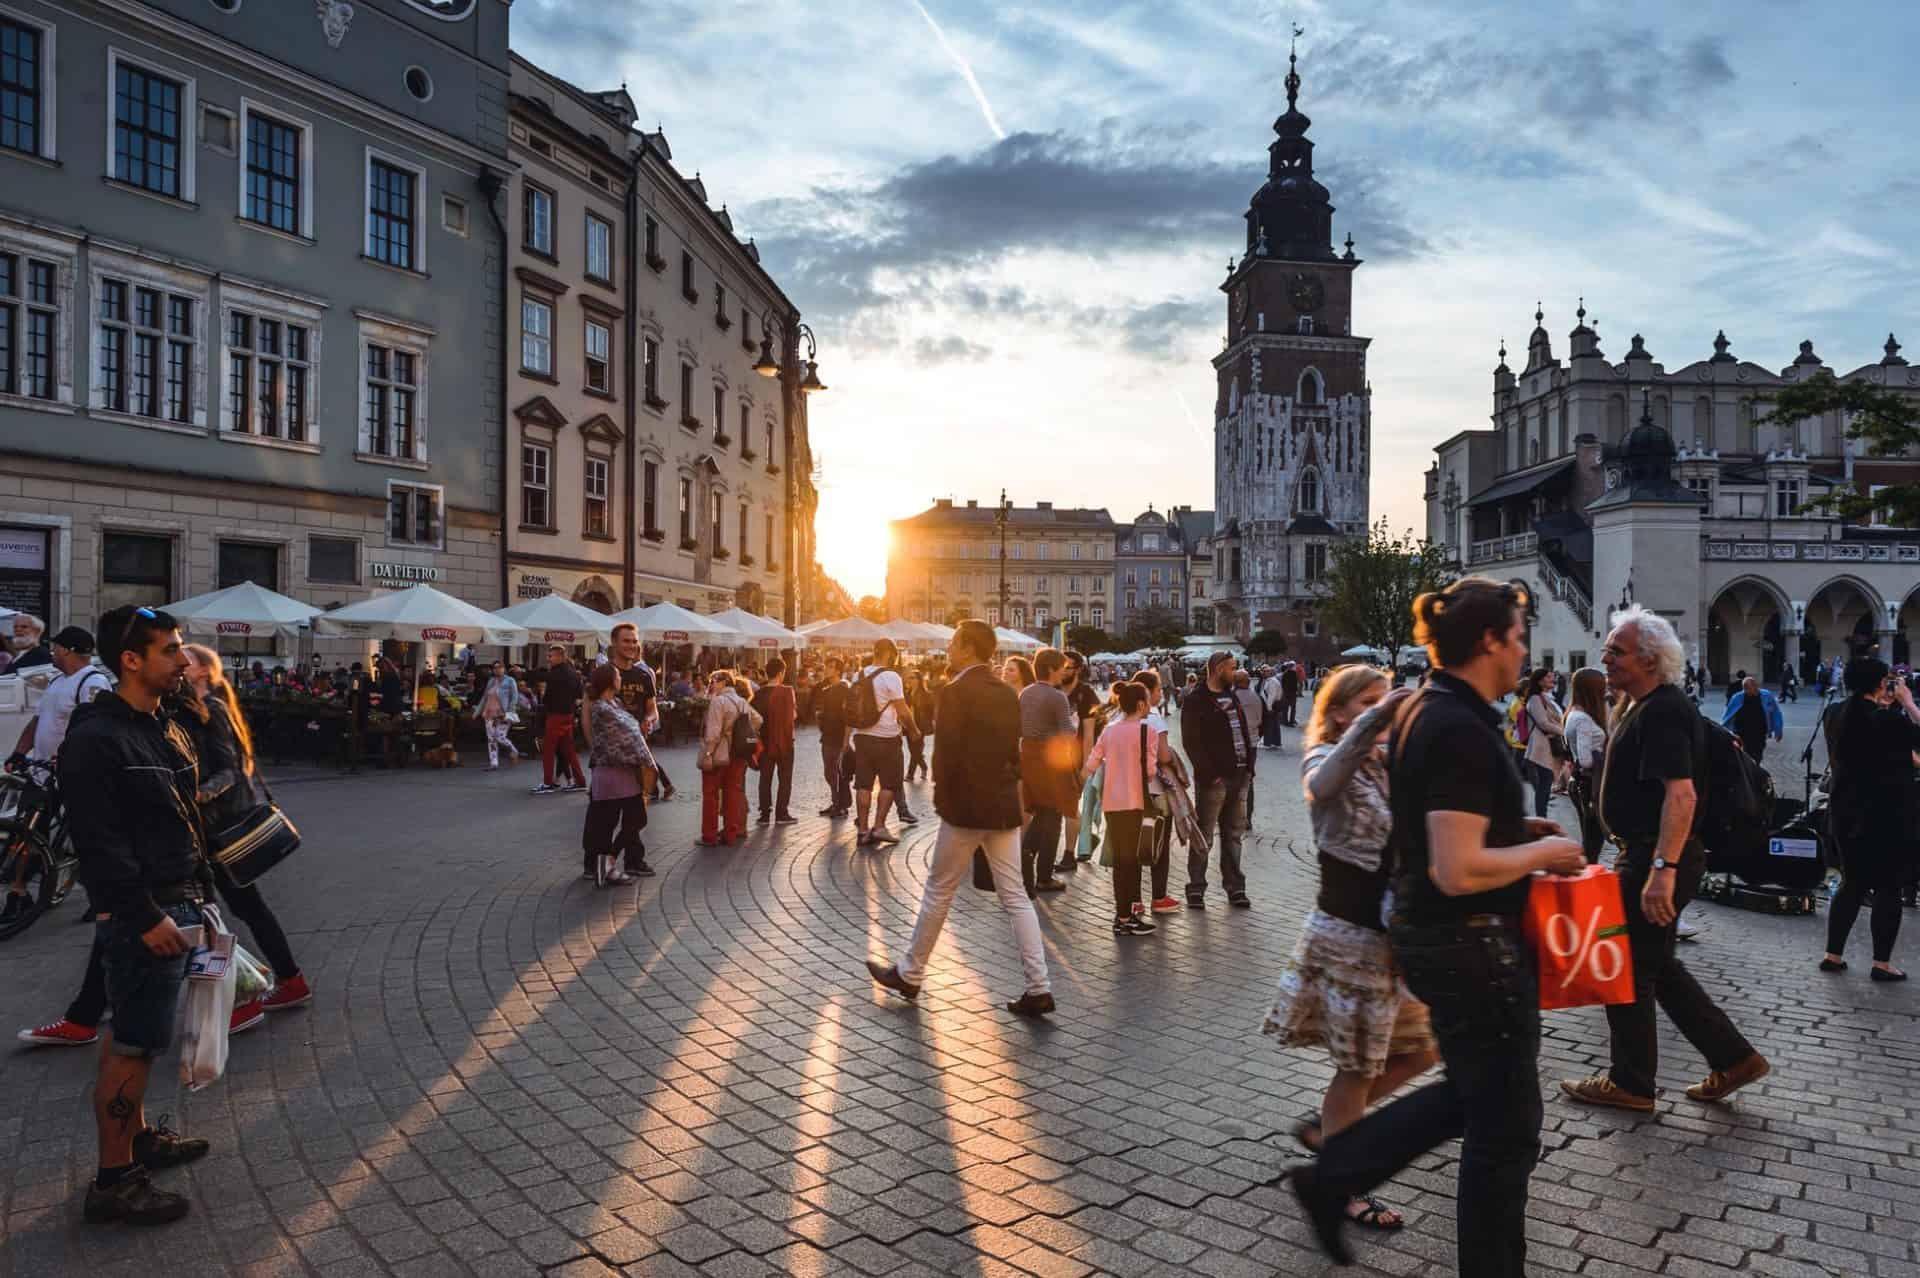 Kraków, Poland. Photo by Jacek Dylag on Unsplash